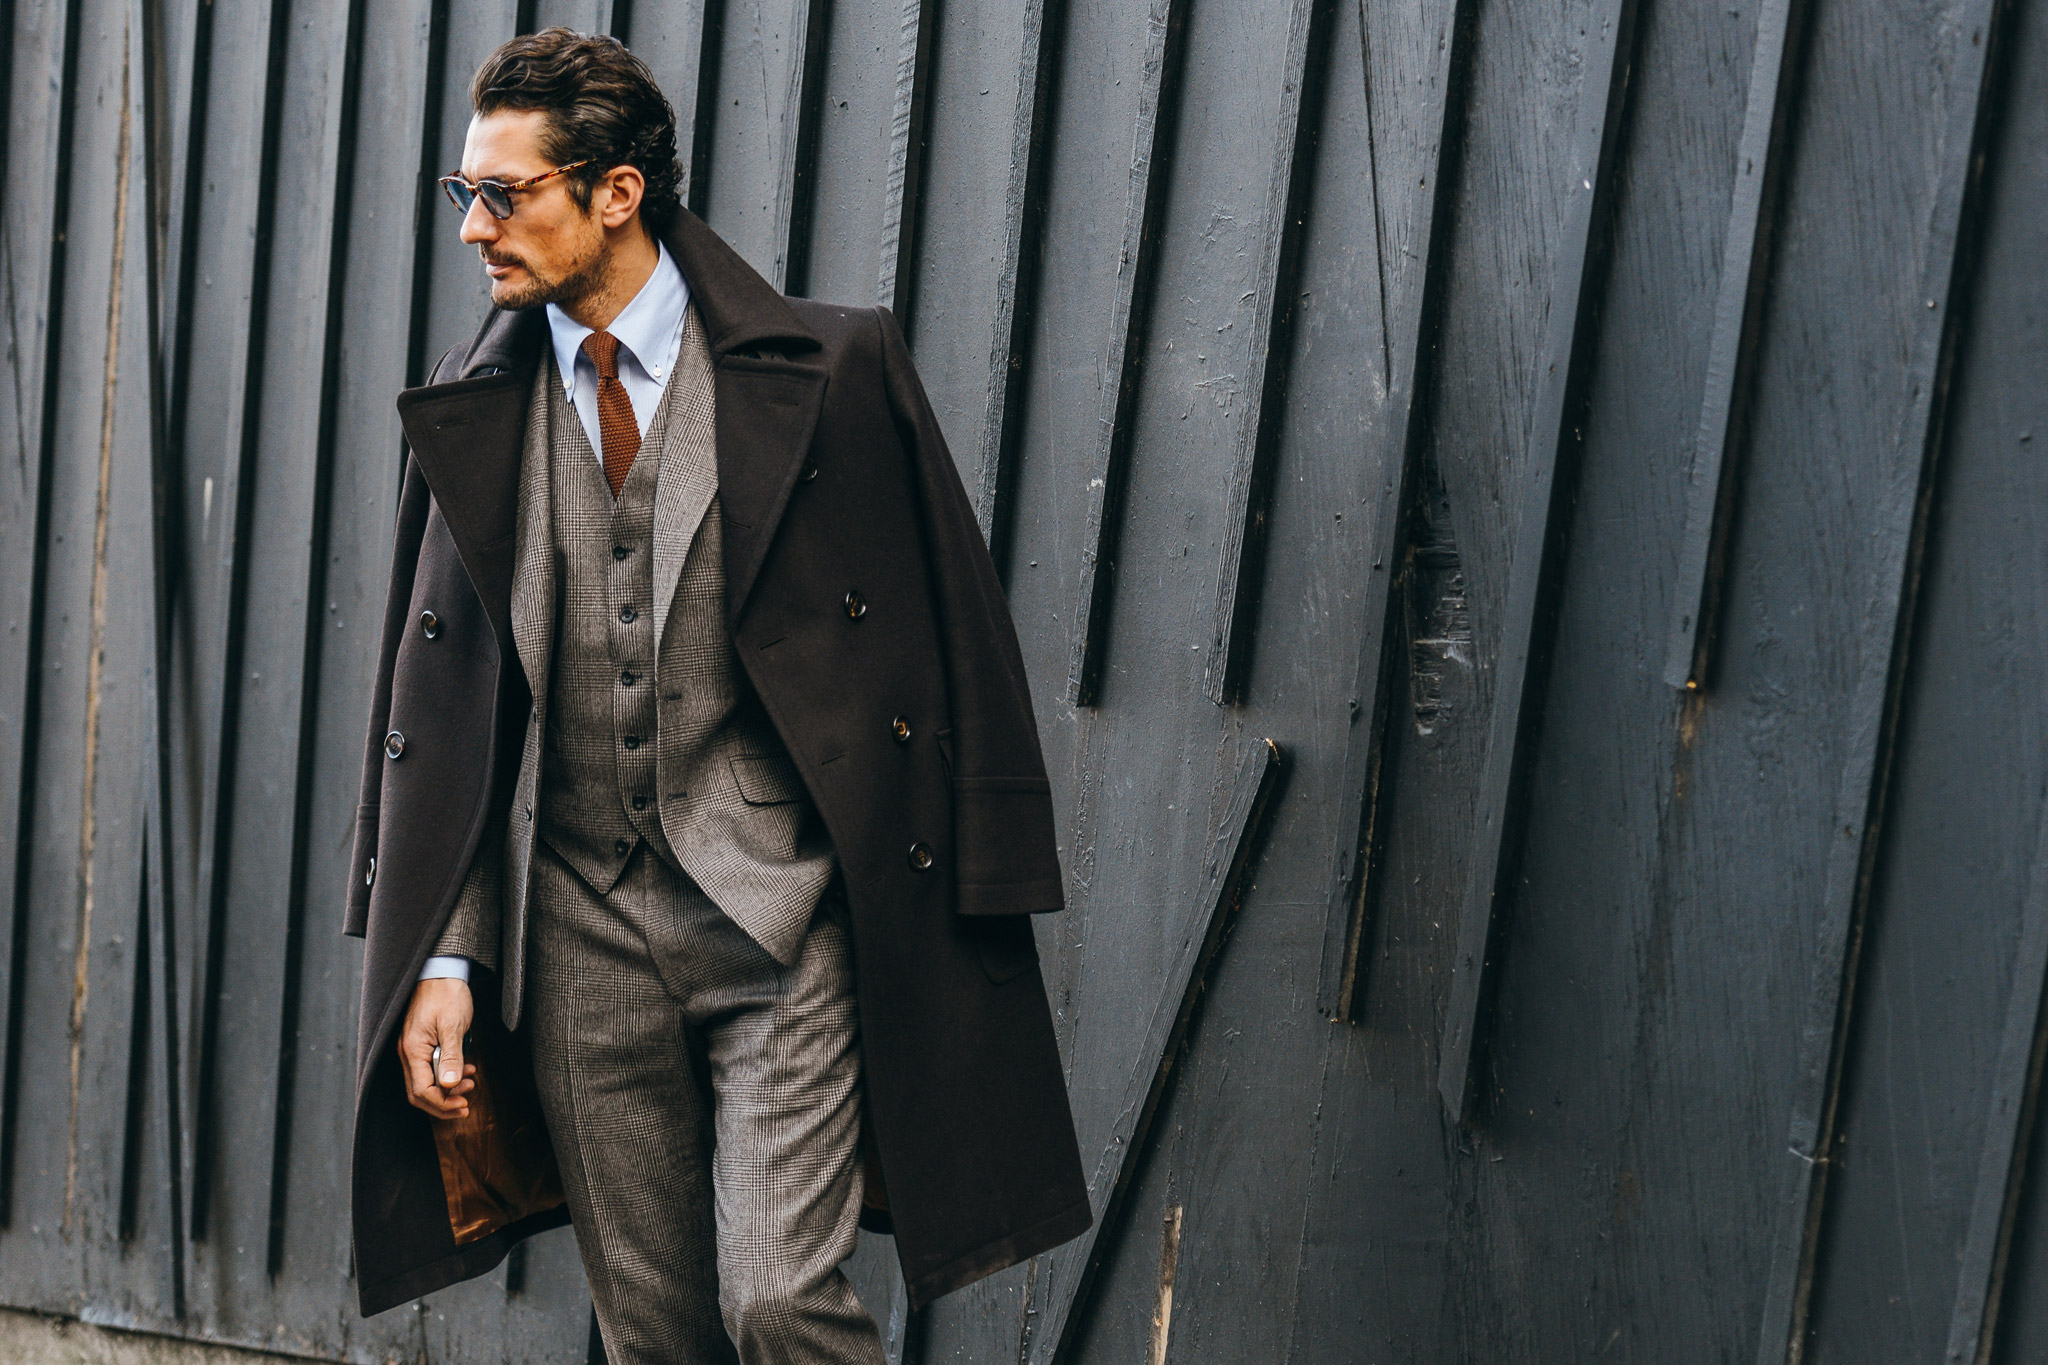 Fashion for men in their forties Men's Fashion Book Guide - 100 Books For Your Menswear